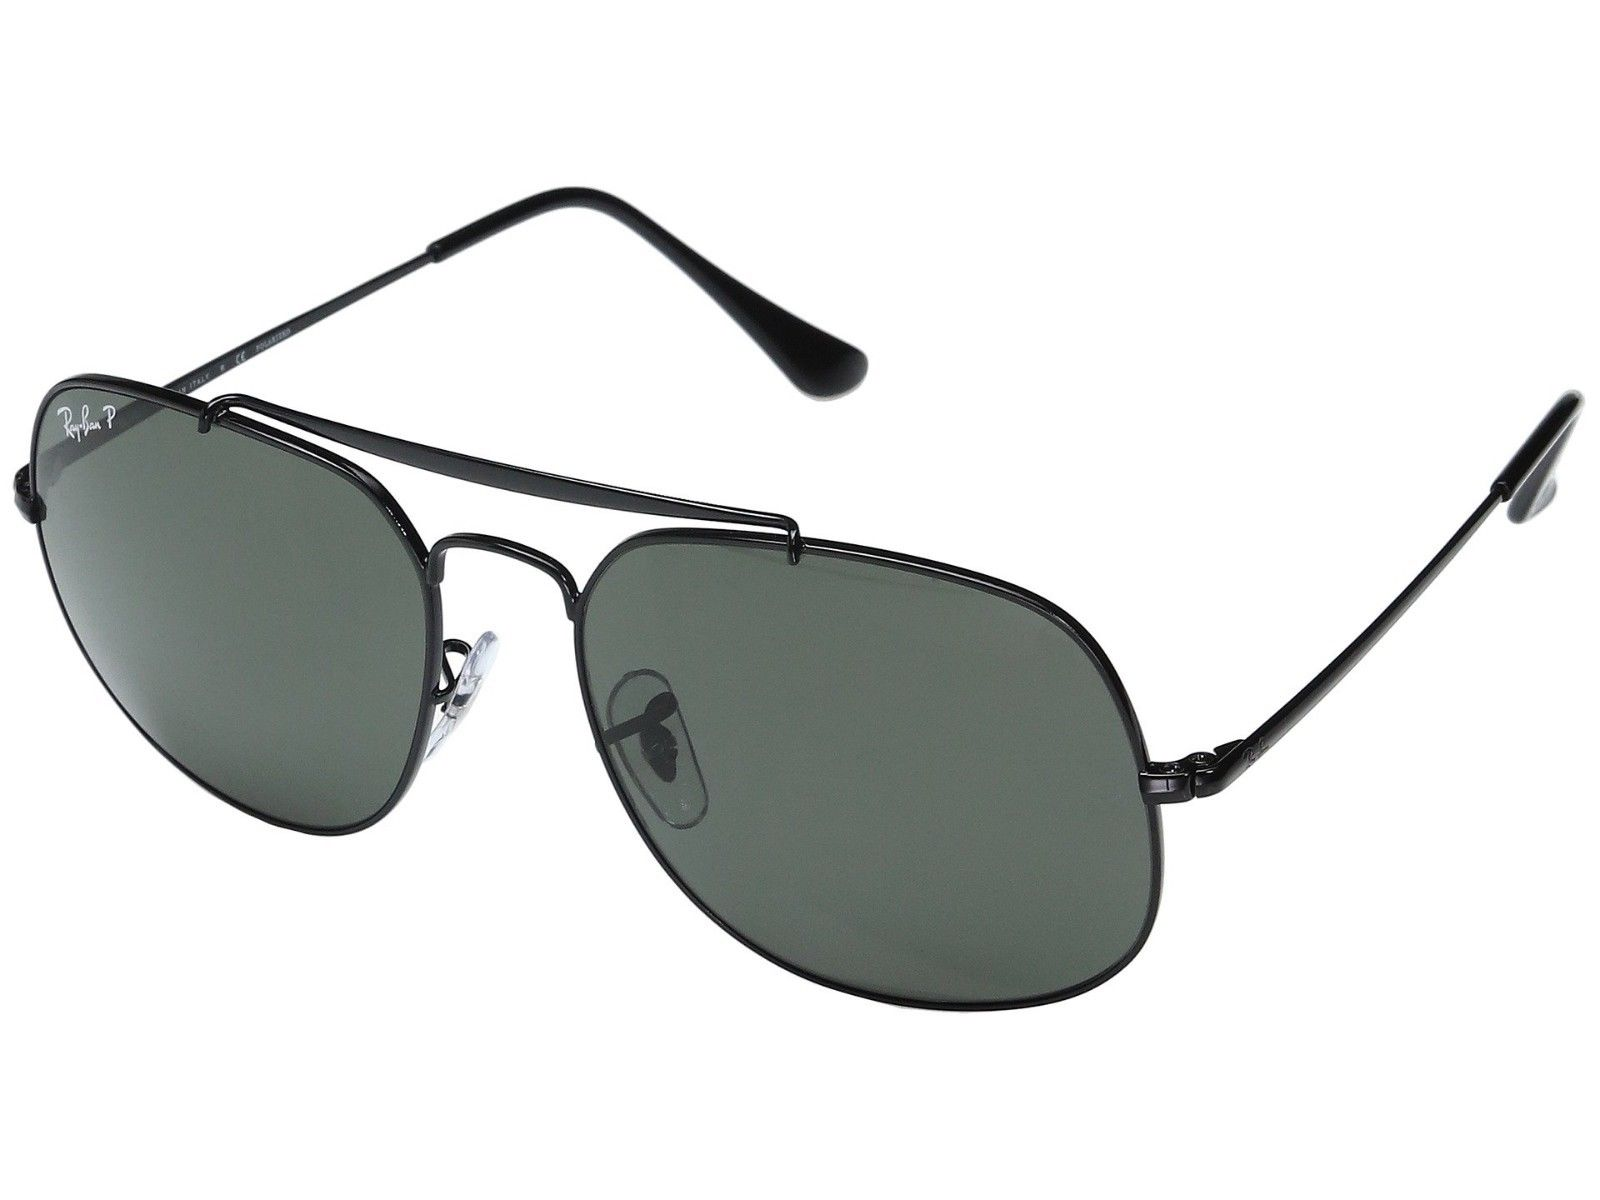 Ray-Ban 'The General' Black/Green Polarized Sunglasses! (RB3561 002/58)